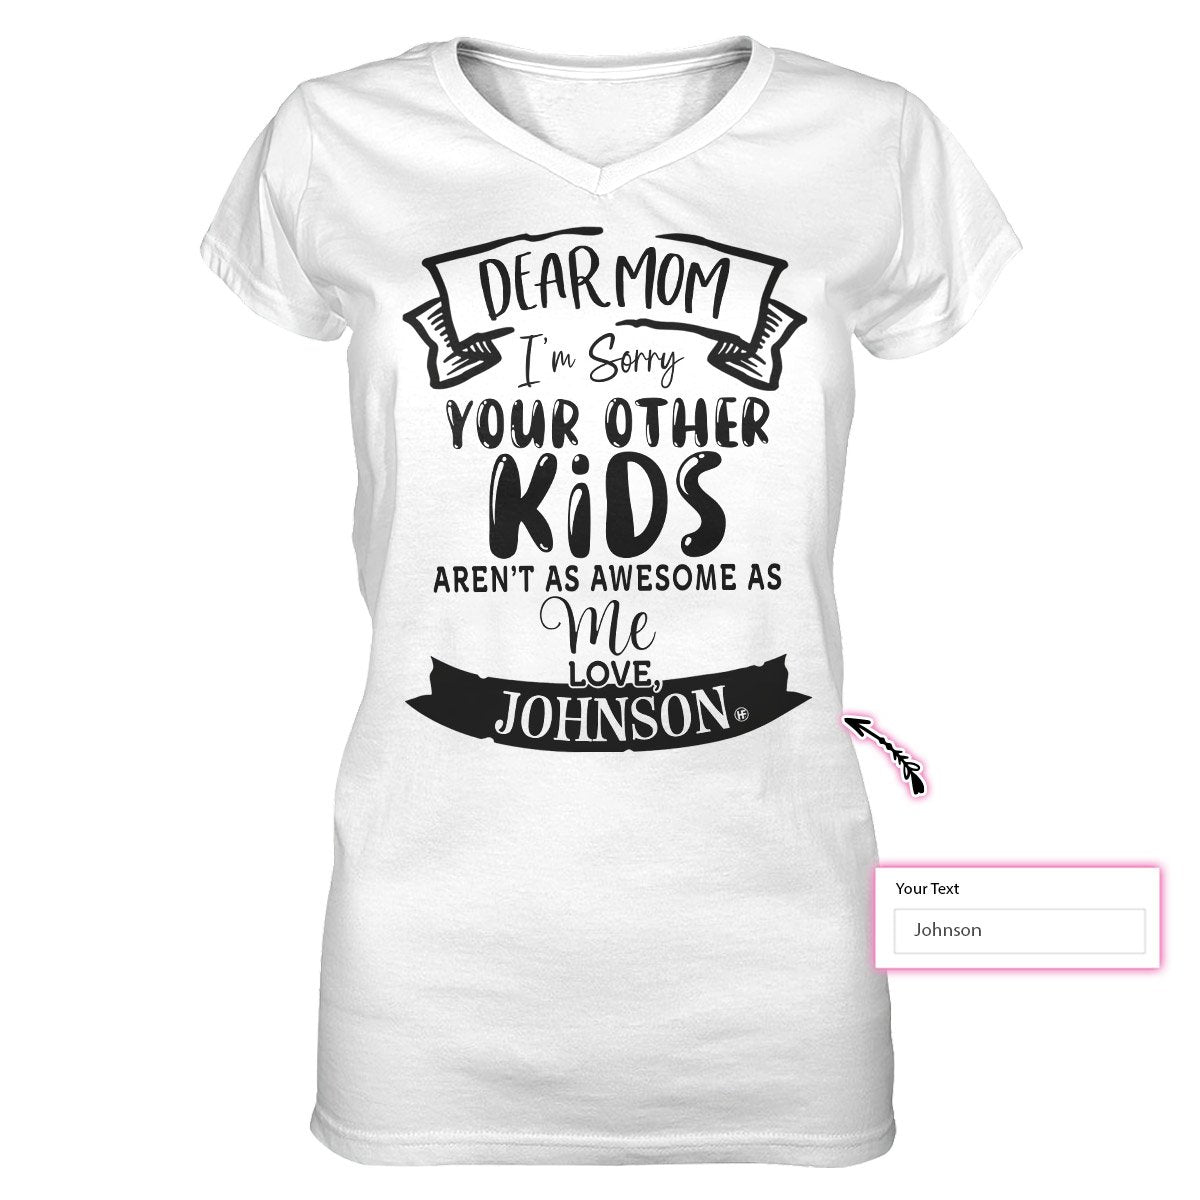 Your Other Kids Aren't As Awesome As Me EZ24 0203 Custom Women V-neck T-shirt